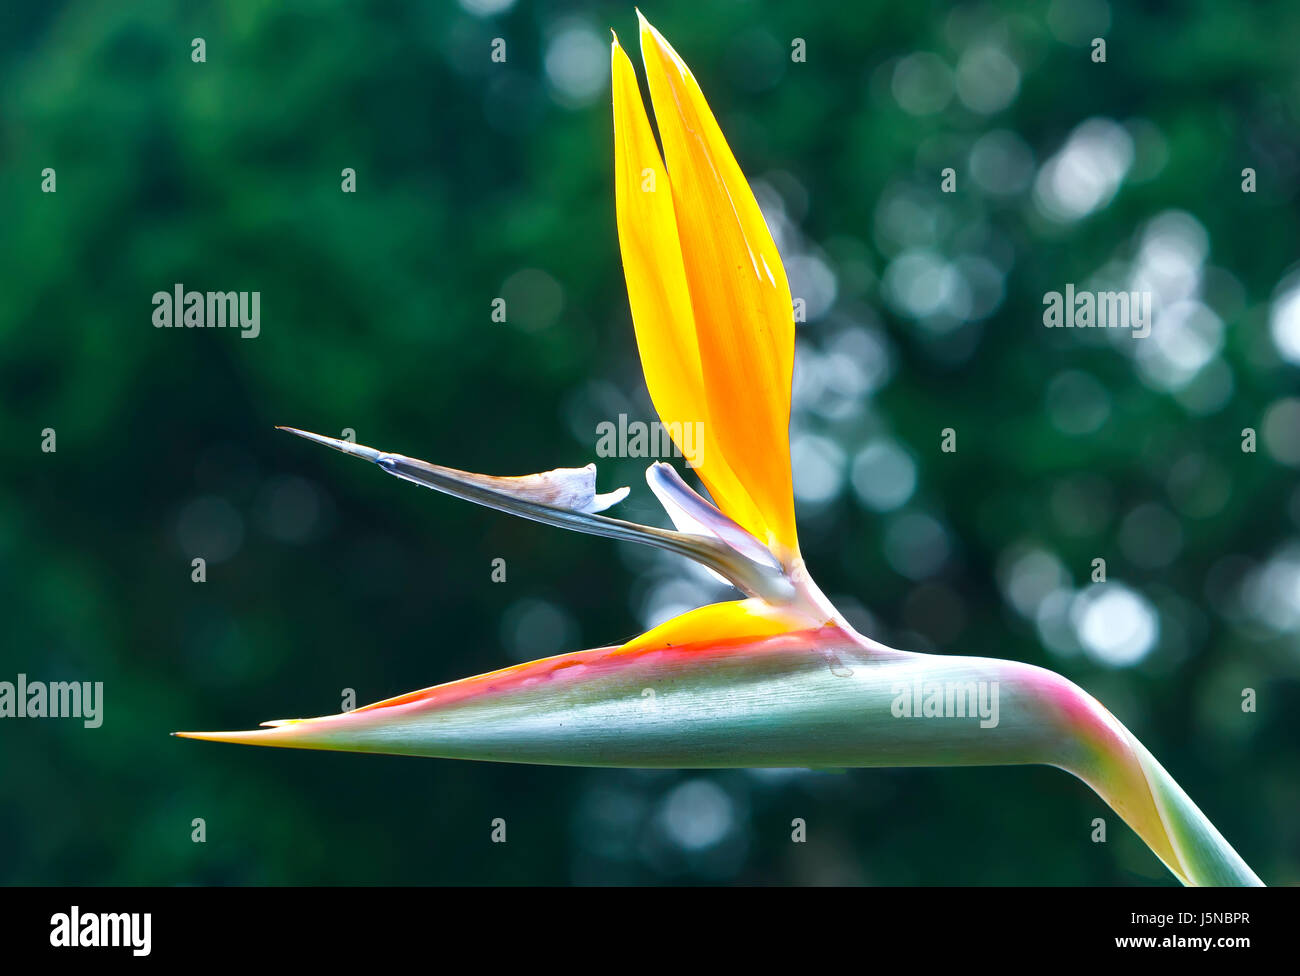 Bird of paradise flowers stock photos bird of paradise flowers the bird of paradise flowers bloom in the love garden this is the flower that biocorpaavc